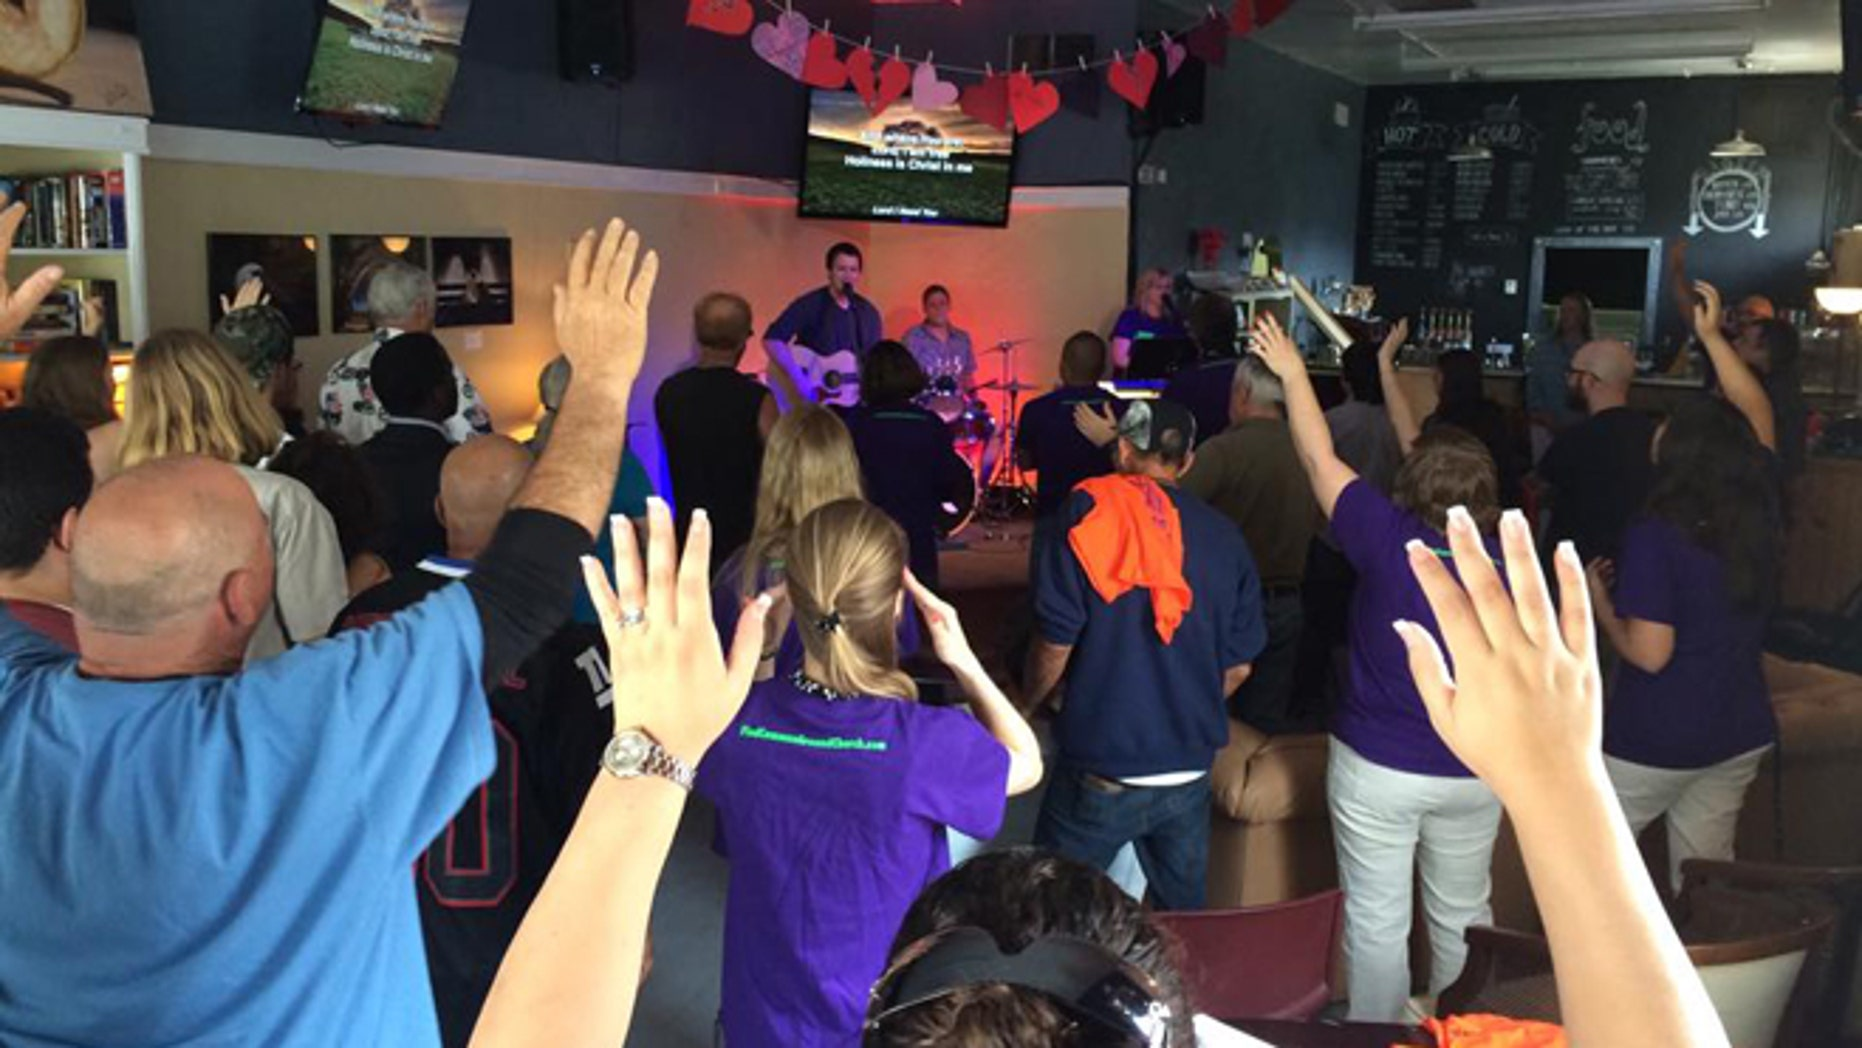 A worship service at Common Ground Church in Lake Worth, Fla.